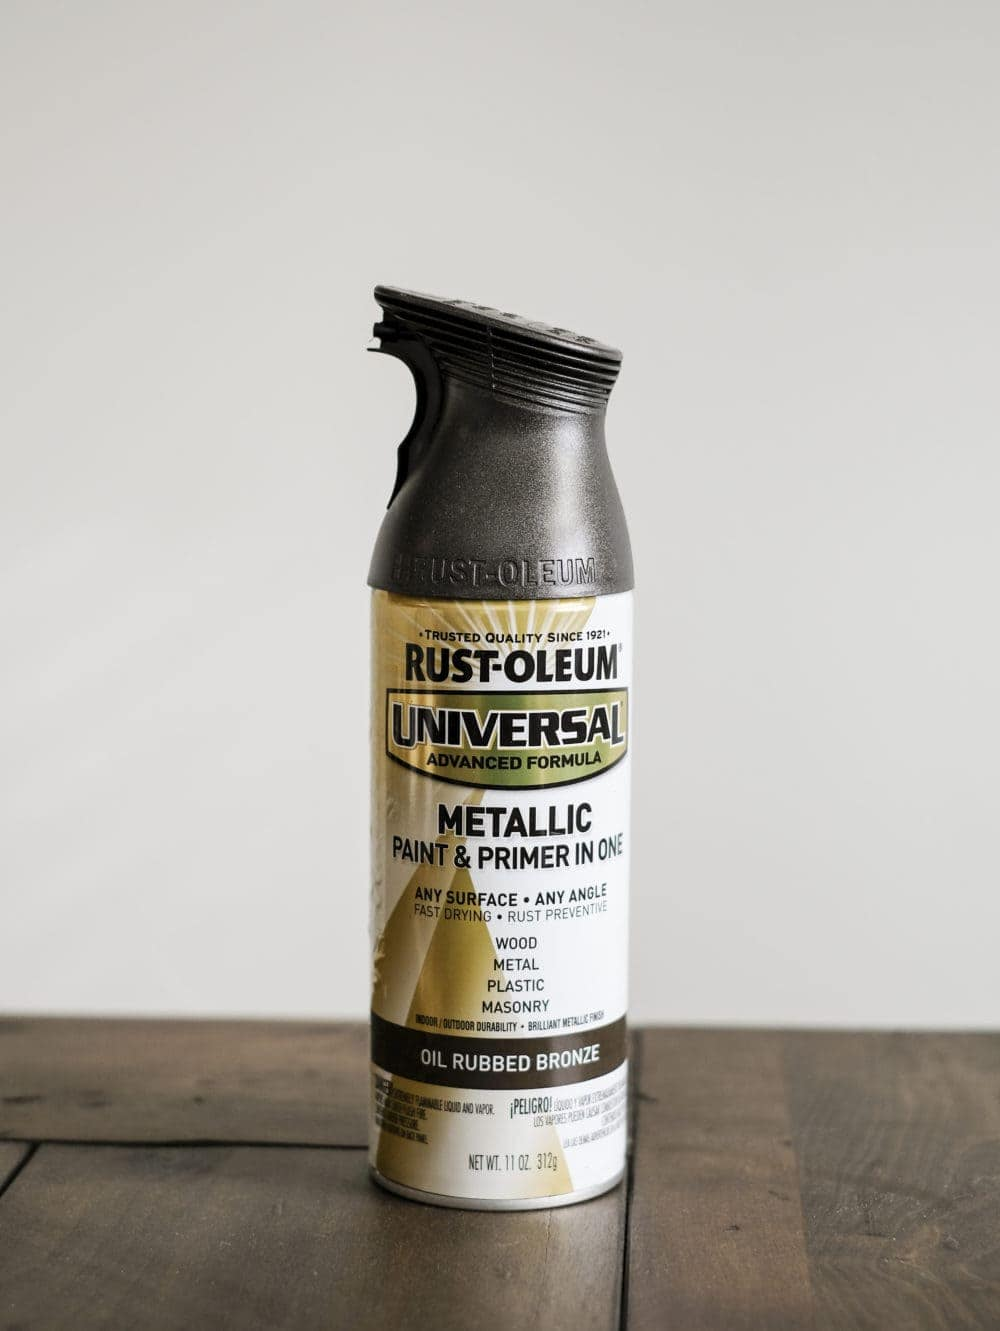 RUST-OLEUM METALLIC OIL RUBBED BRONZE spray paint